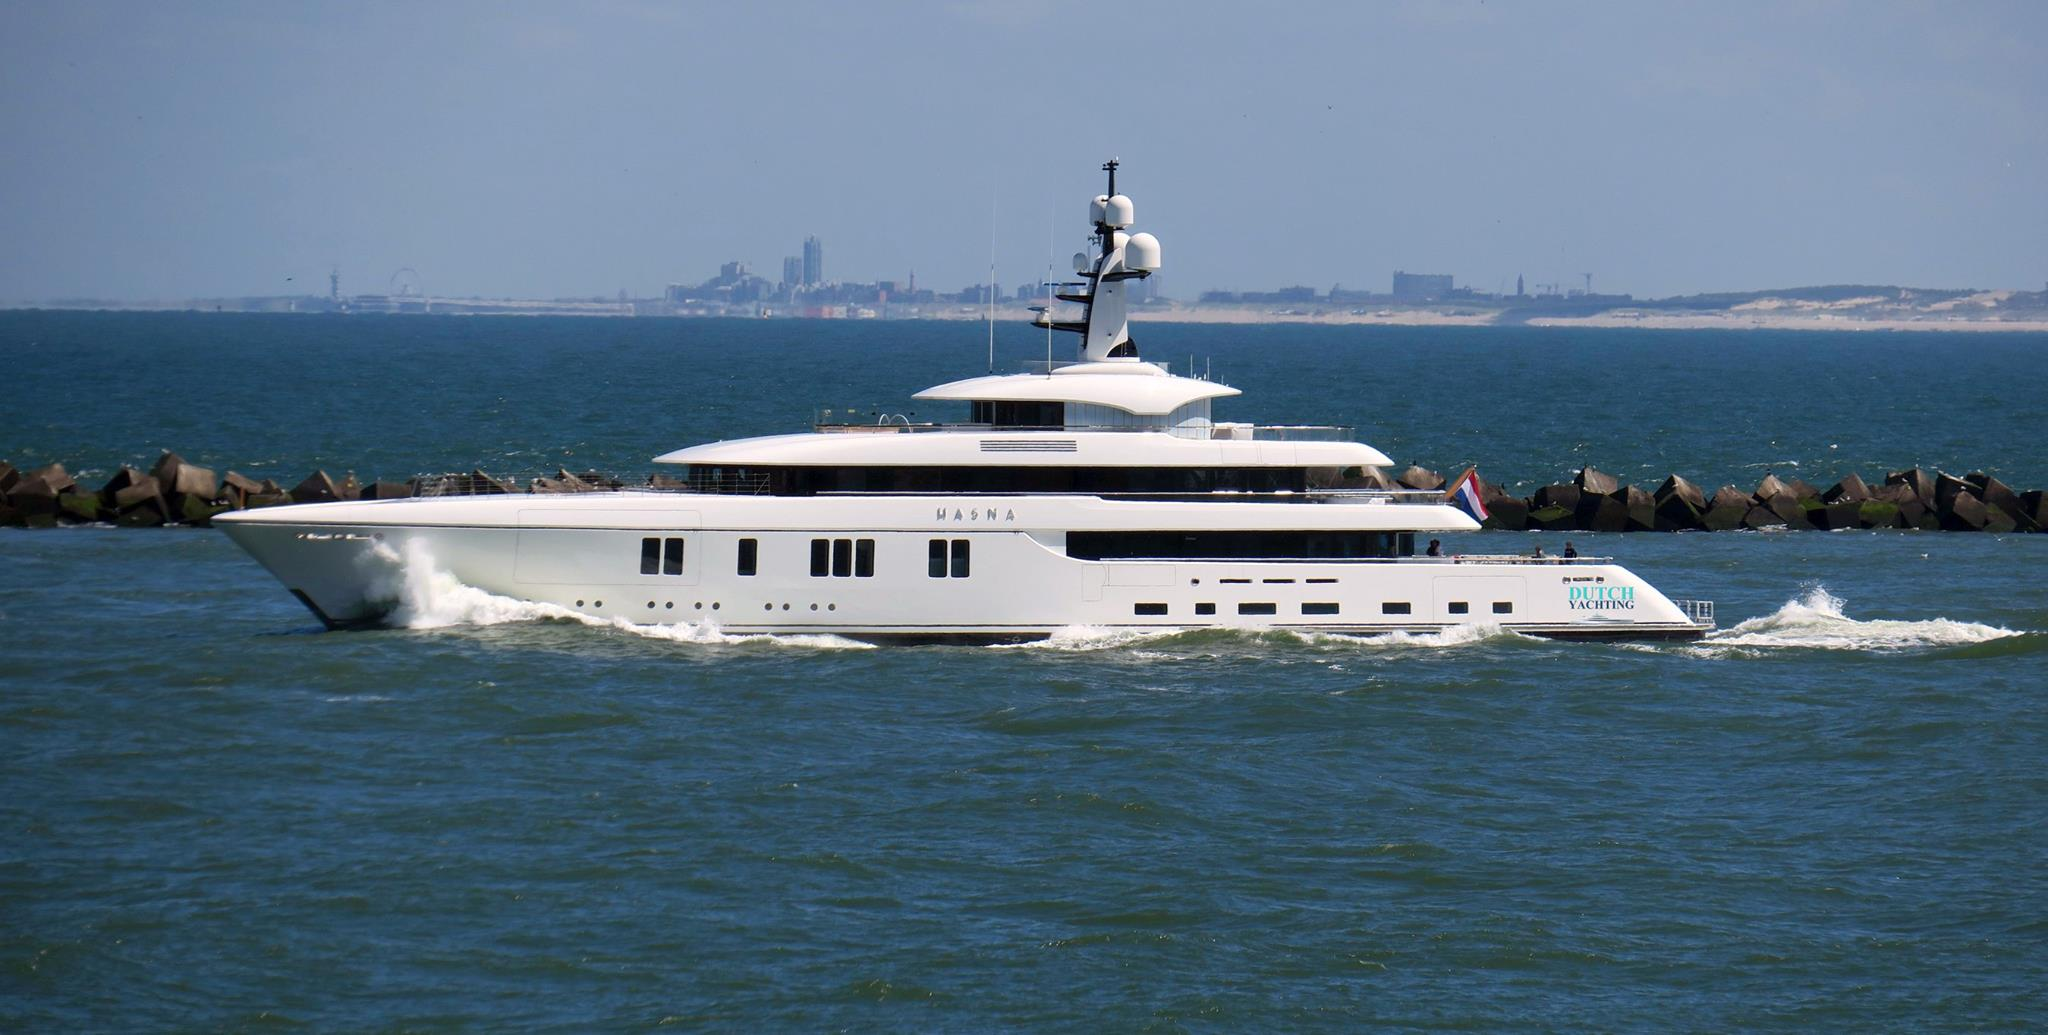 Top 5 Yacht Stories Of The Week